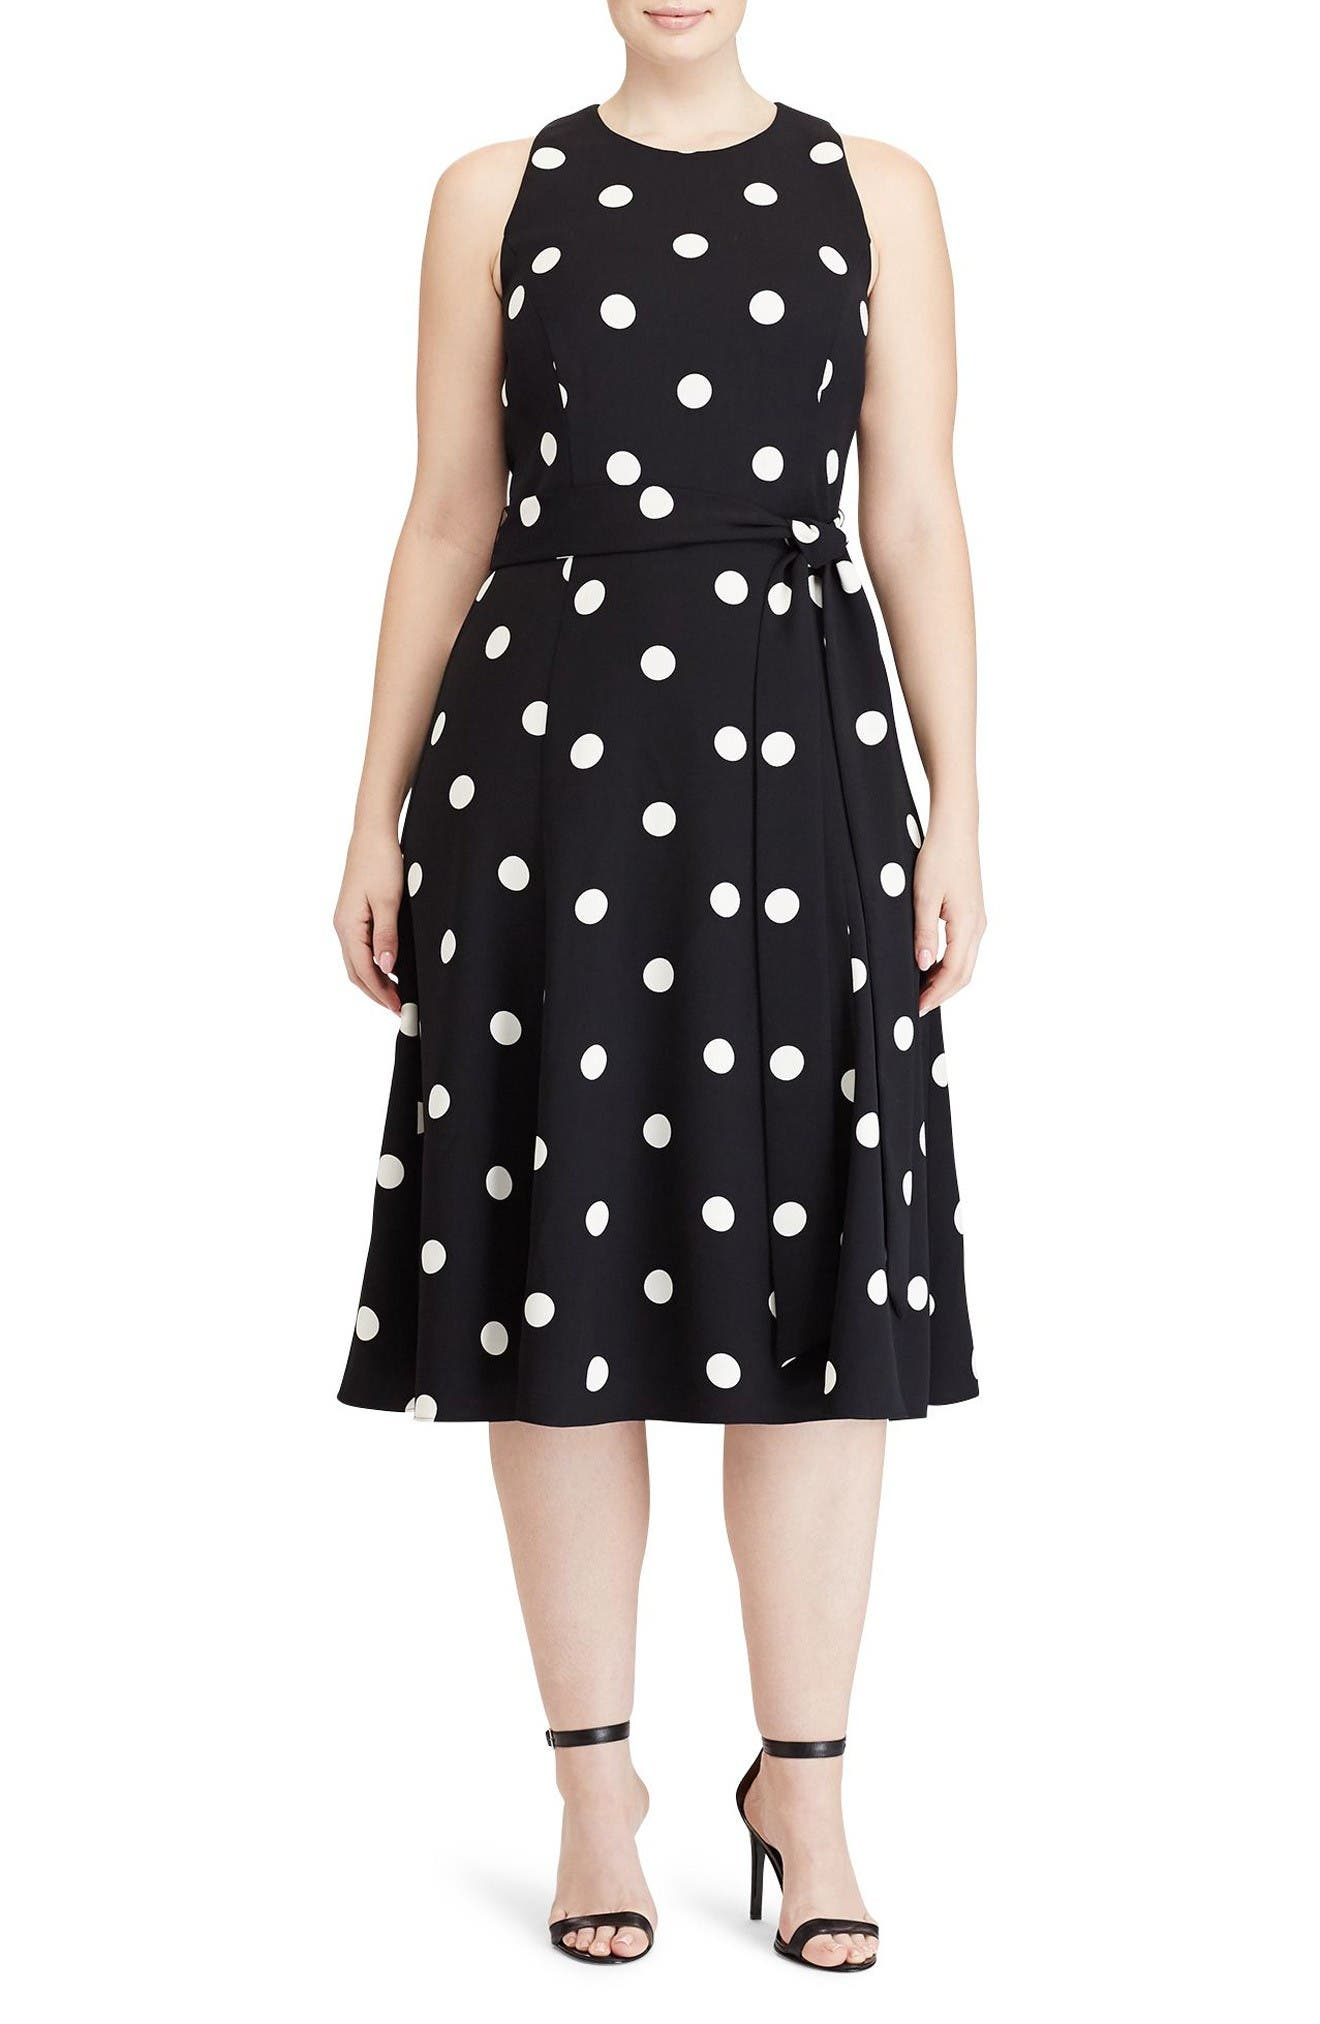 Lauren Ralph Lauren Dot Print Crepe Fit & Flare Dress (Plus Size)